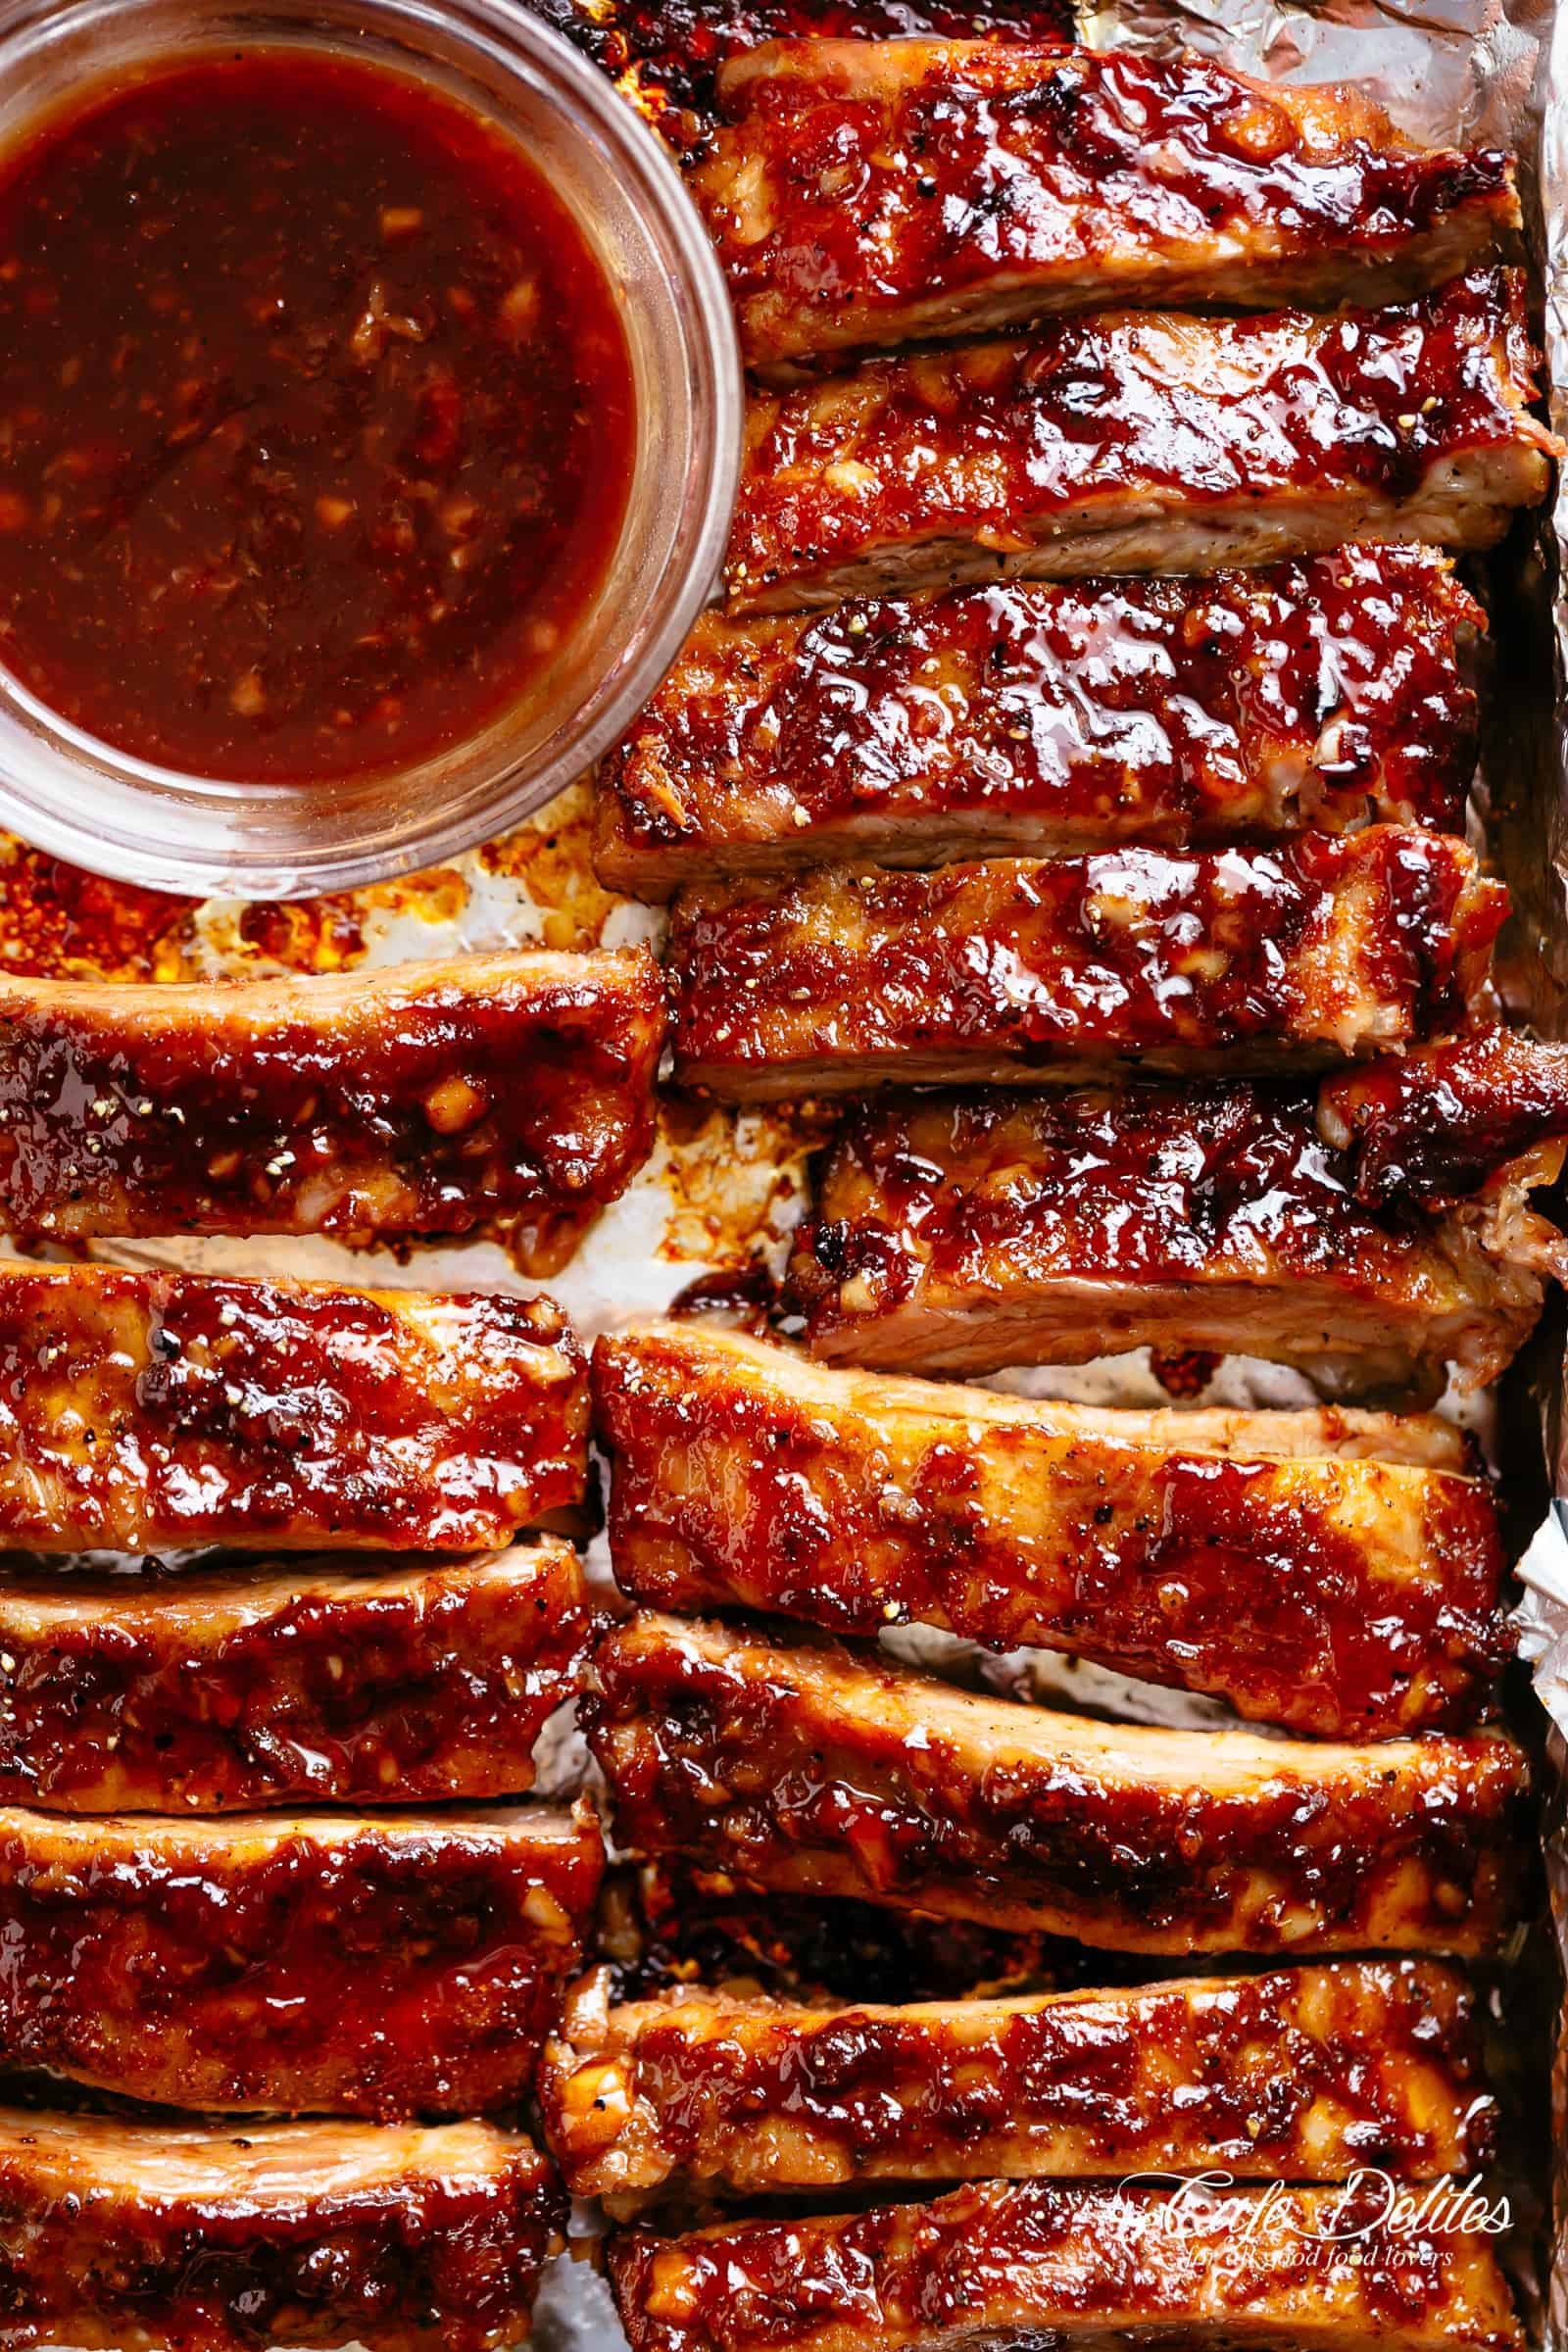 How to cook pork ribs